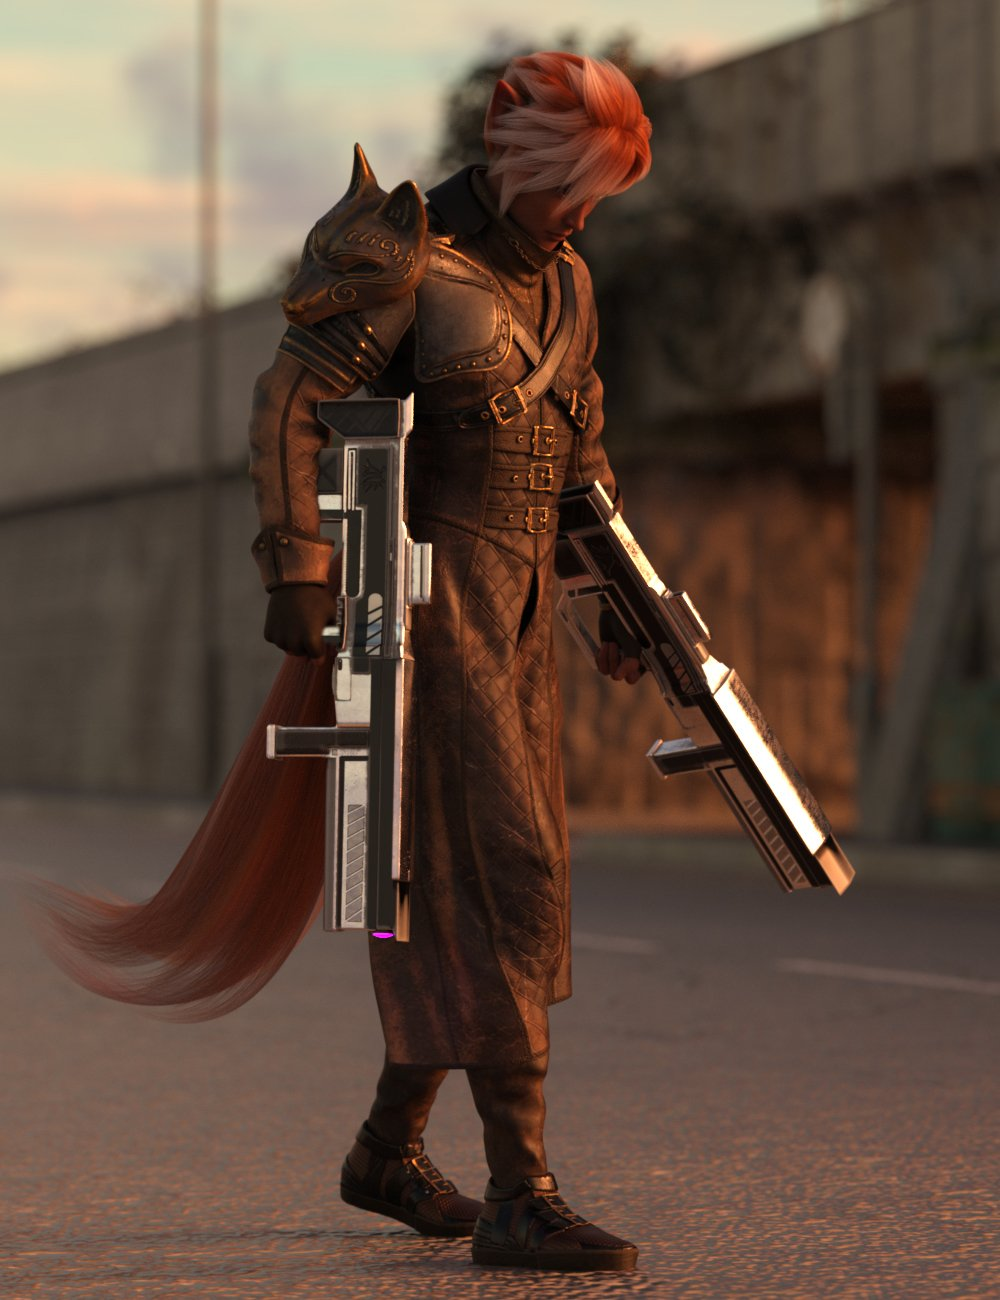 Mercenary Fox Hierarchical Poses for Kota 8.1 by: Ensary, 3D Models by Daz 3D